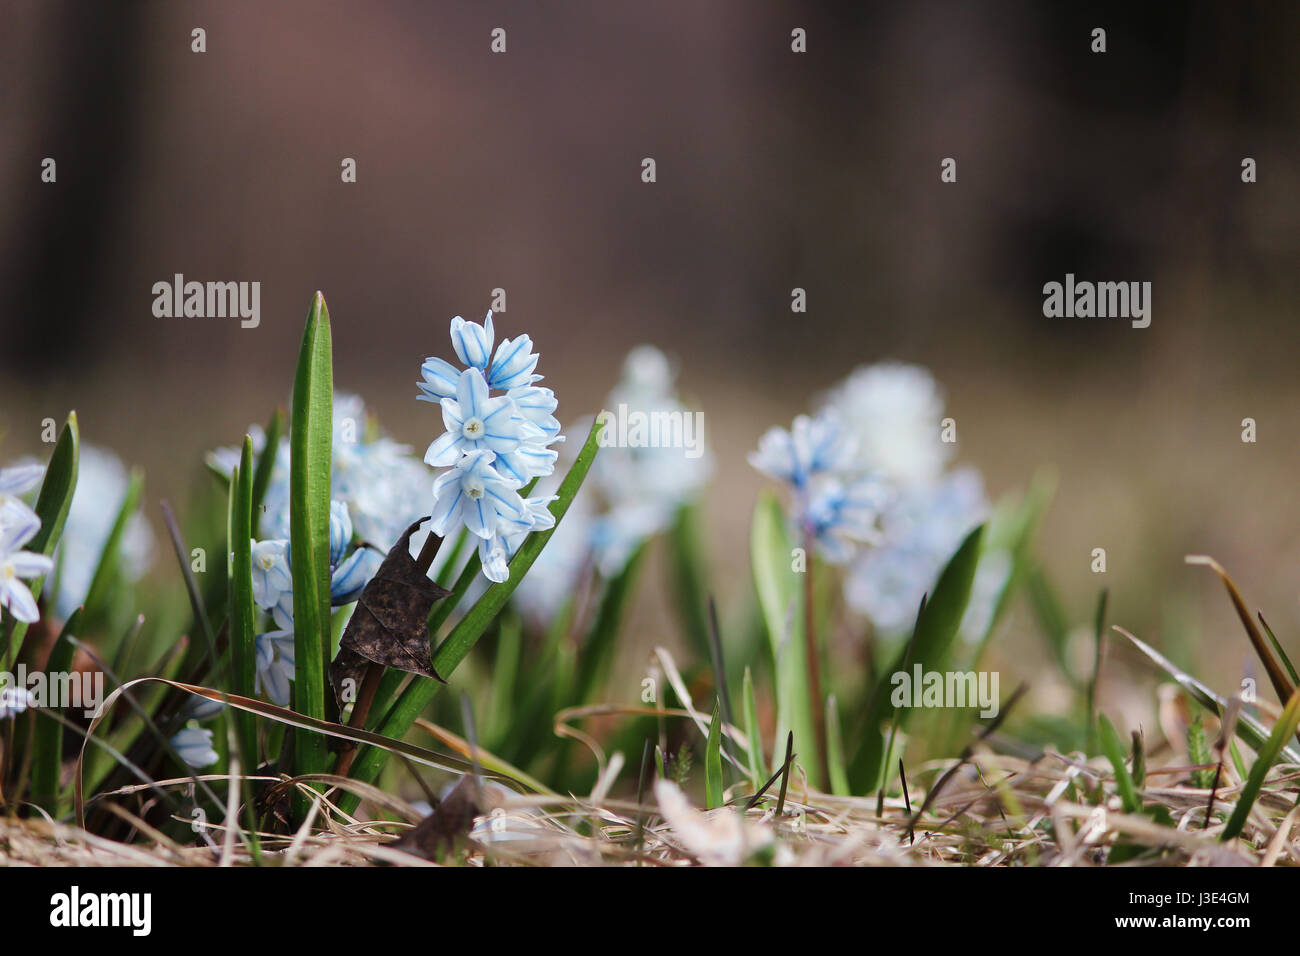 small white spring flowers close up Puschkinia scilloides  Stock Photo